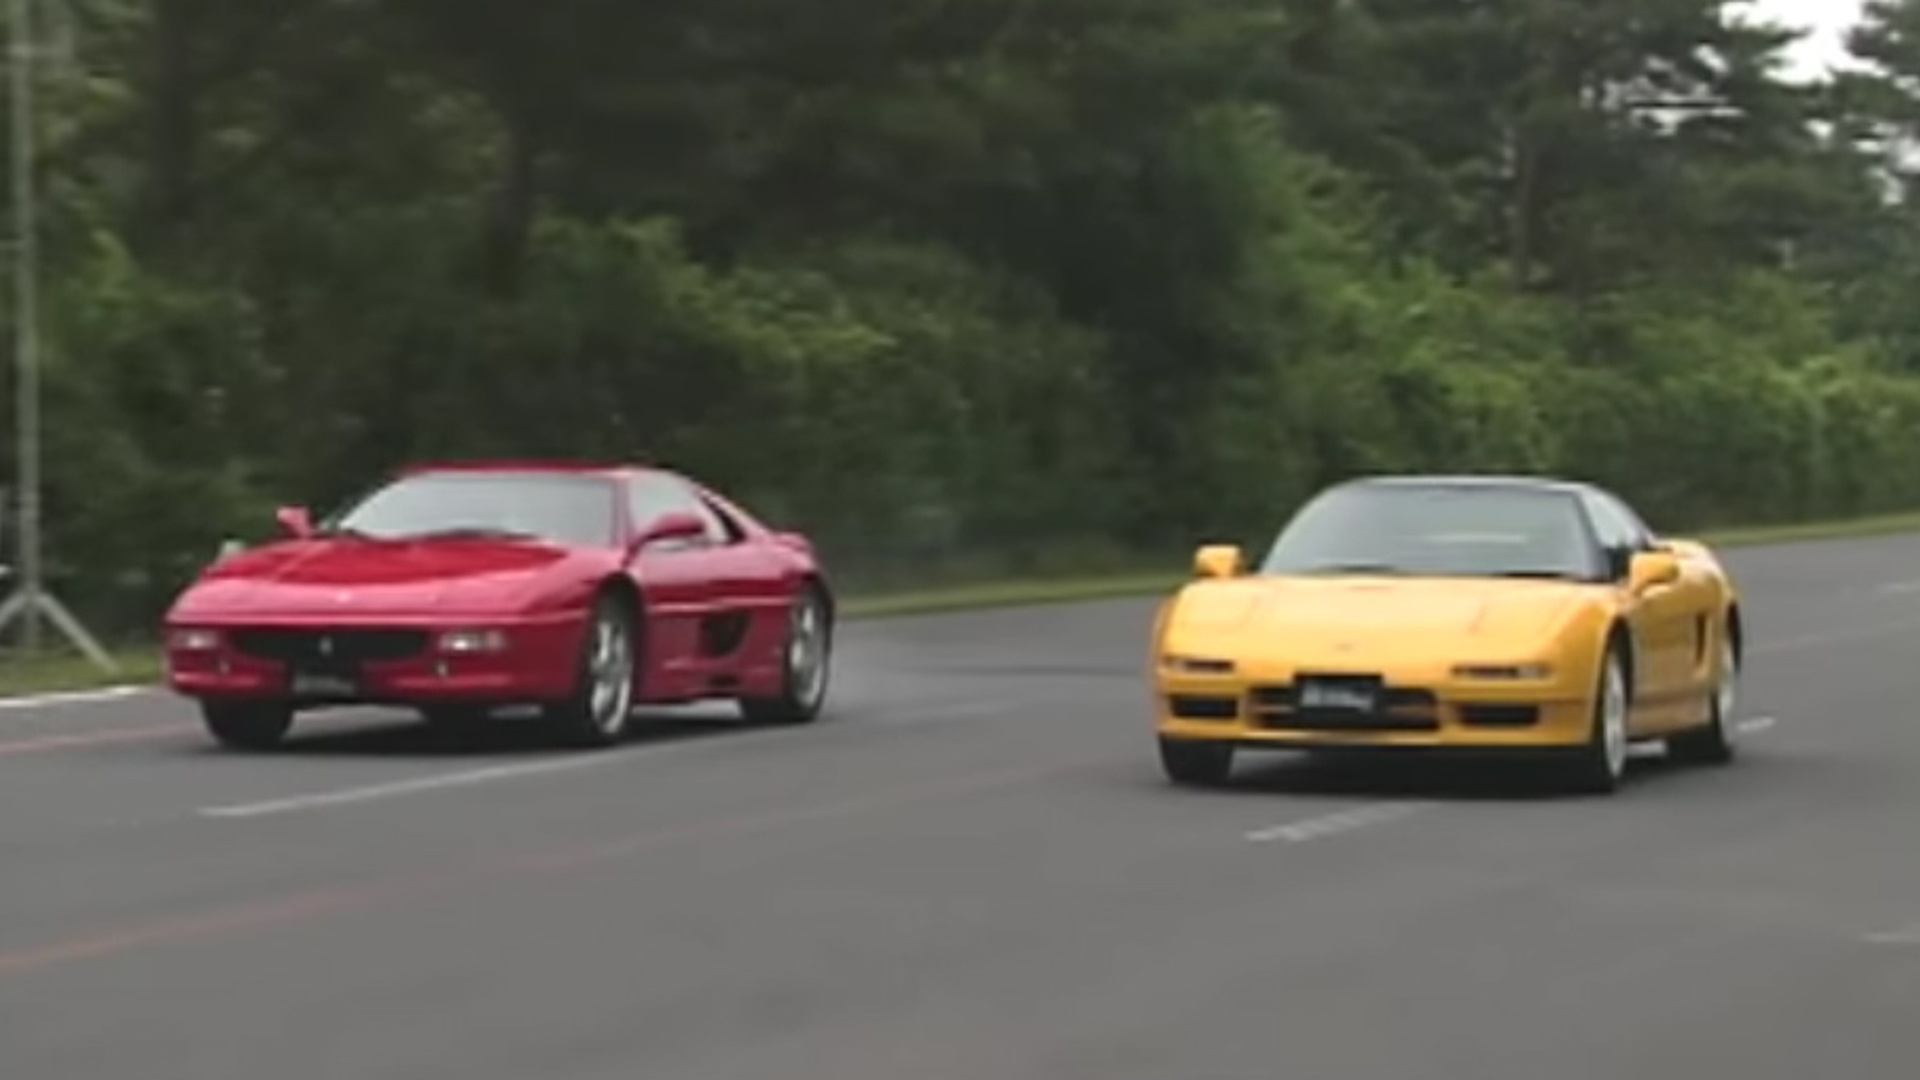 Acura NSX-R and Ferrari F355 drag race transports us back to 1995 on 2016 ford gt vs acura nsx, honda vs acura integra, honda acura nsx concept, 1990 acura honda nsx, honda civic with nos,